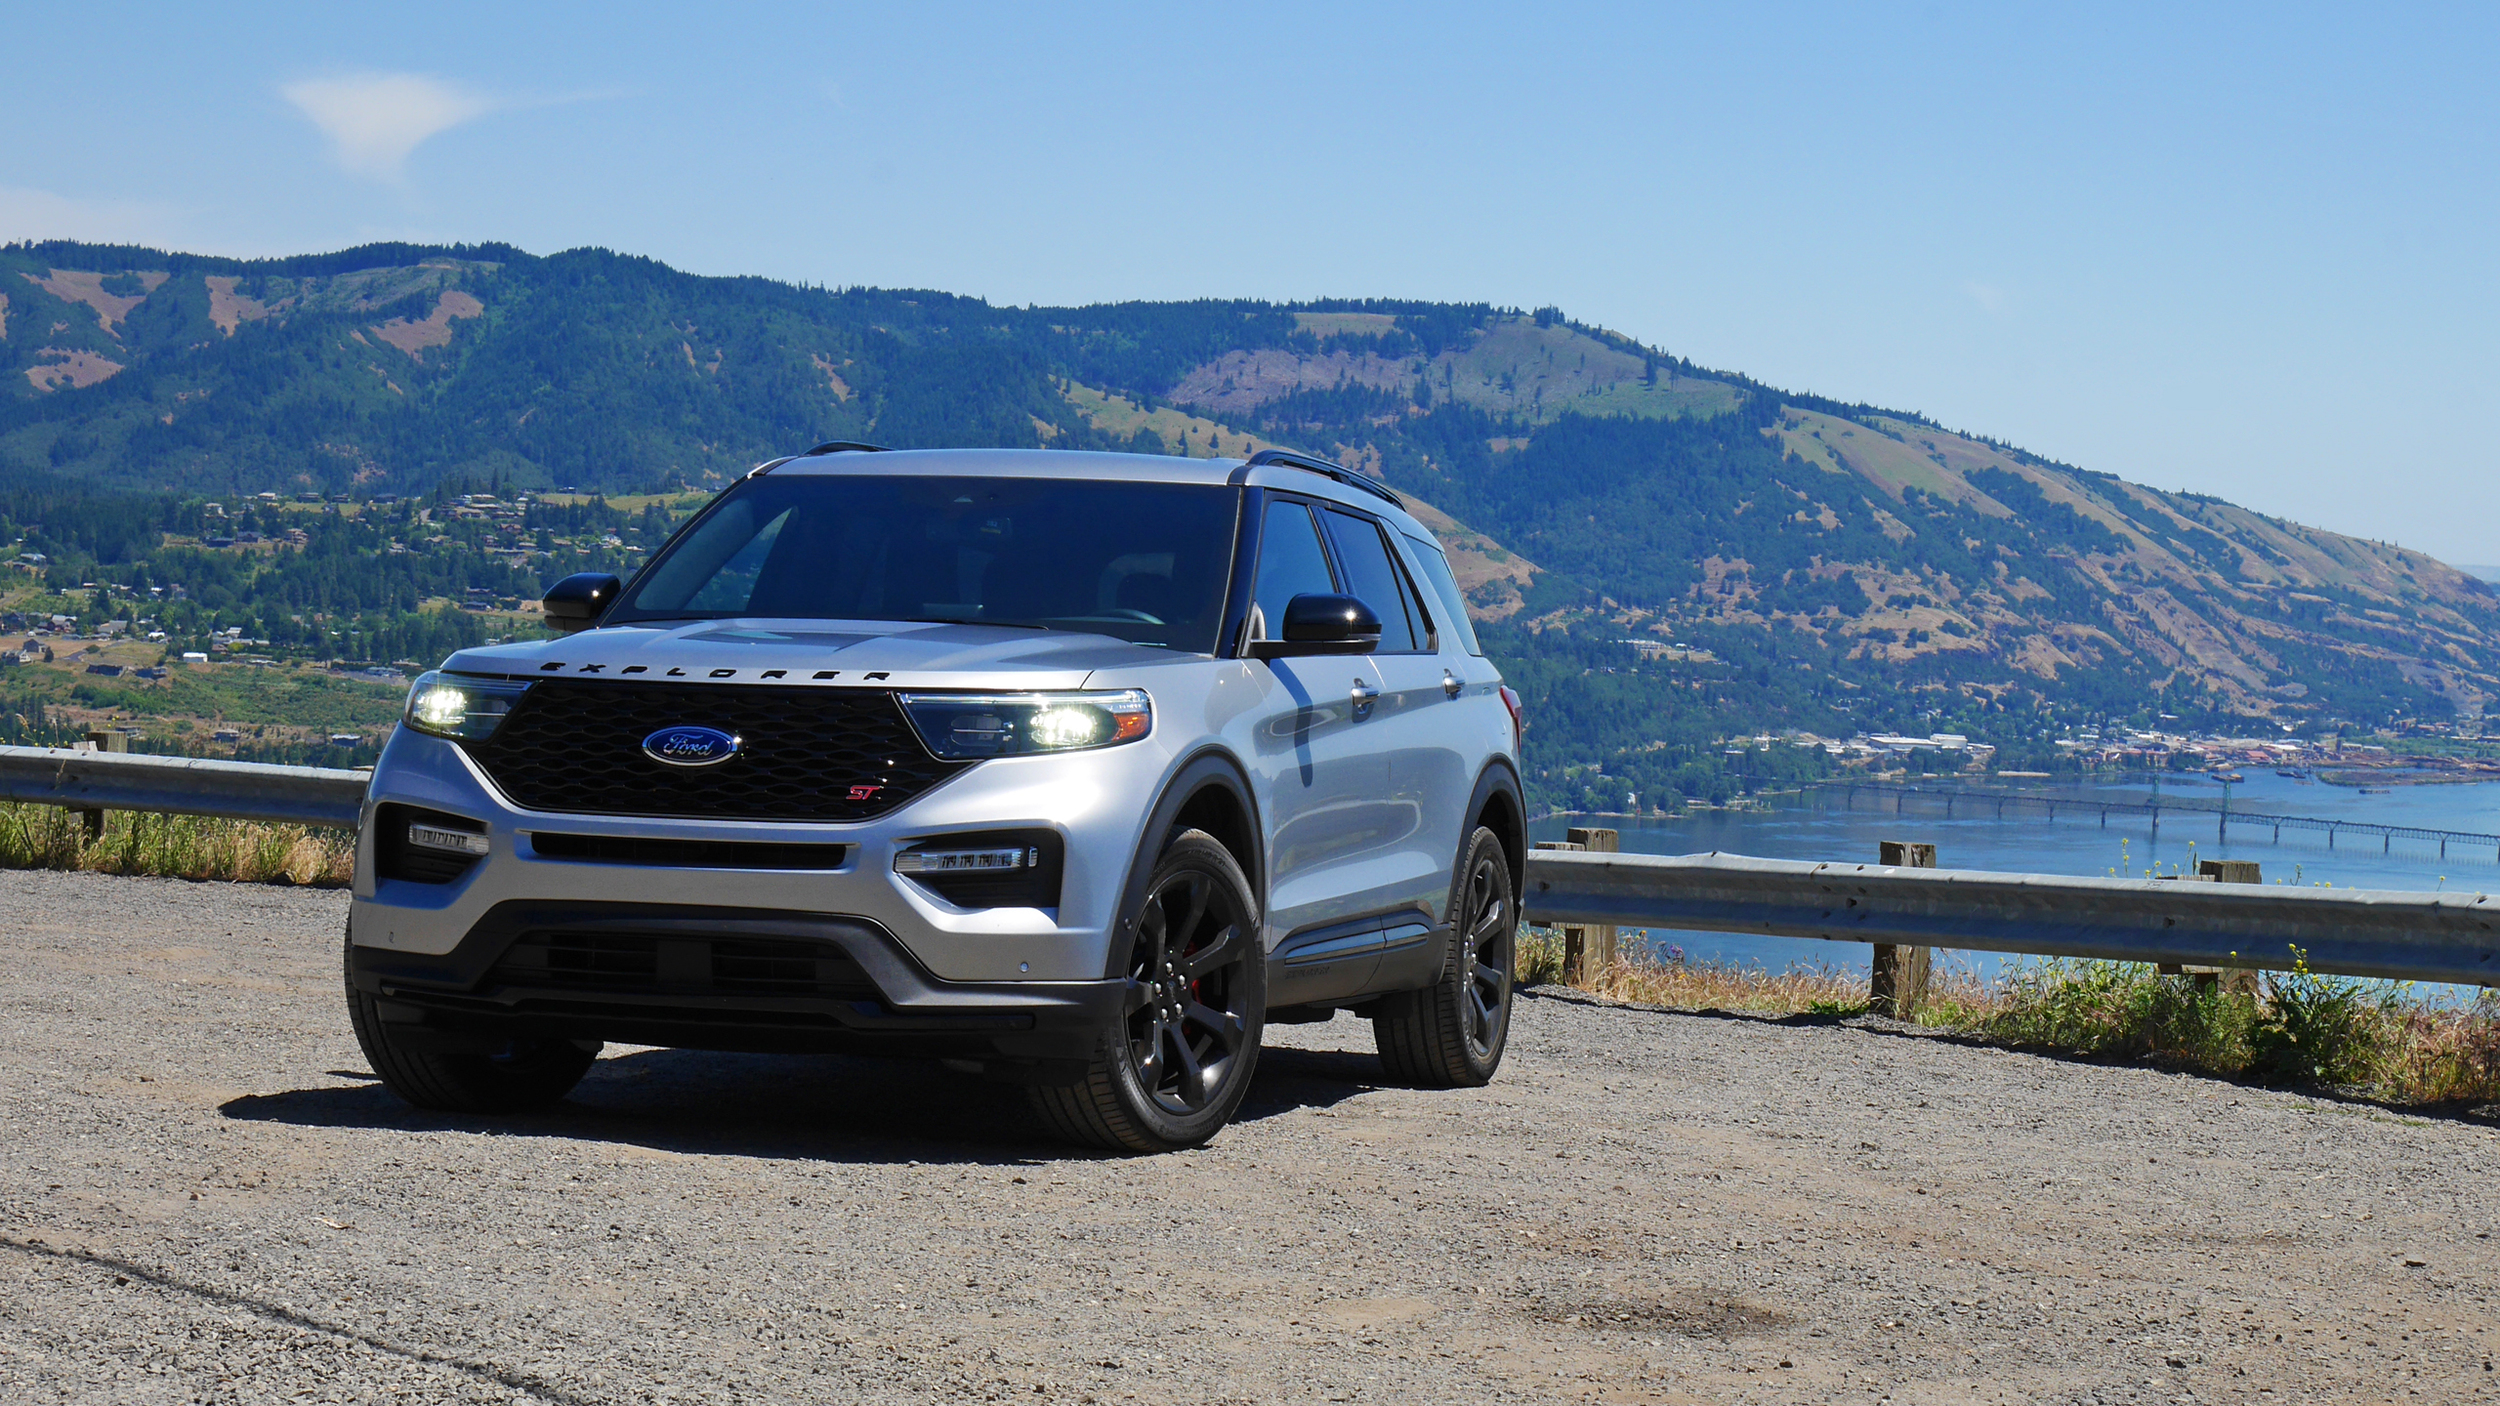 2020 Ford Explorer St First Drive Review Photos Specs Driving Impressions Autoblog